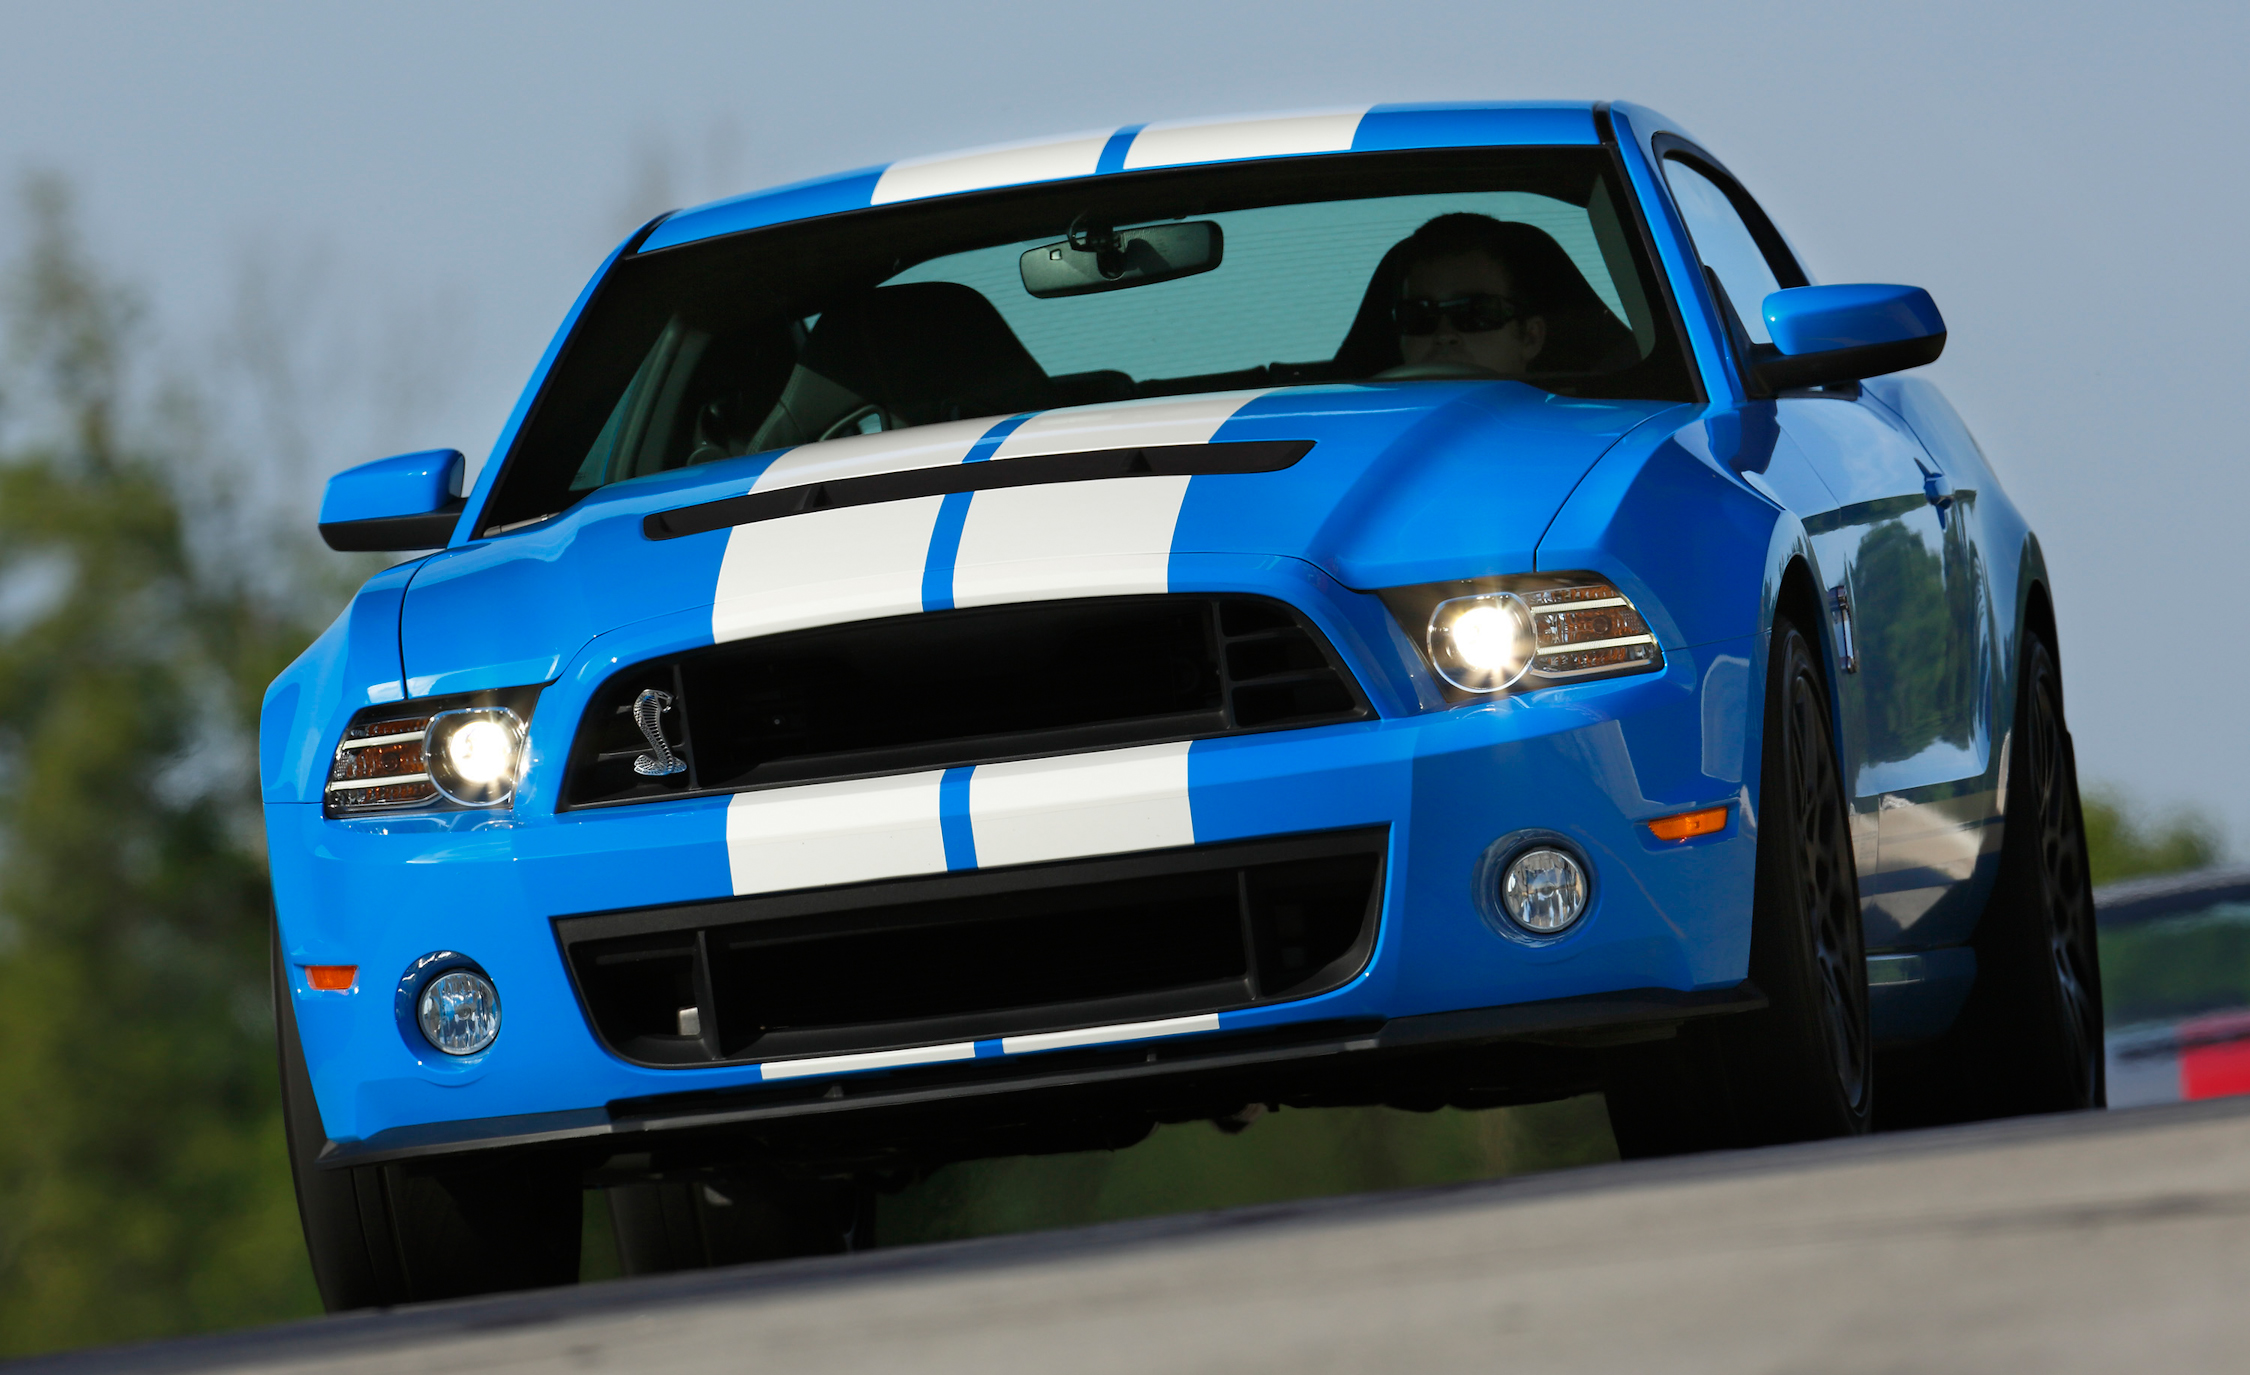 2013 Ford Mustang Shelby GT500 Blue Test Drive Front Profile (View 40 of 47)